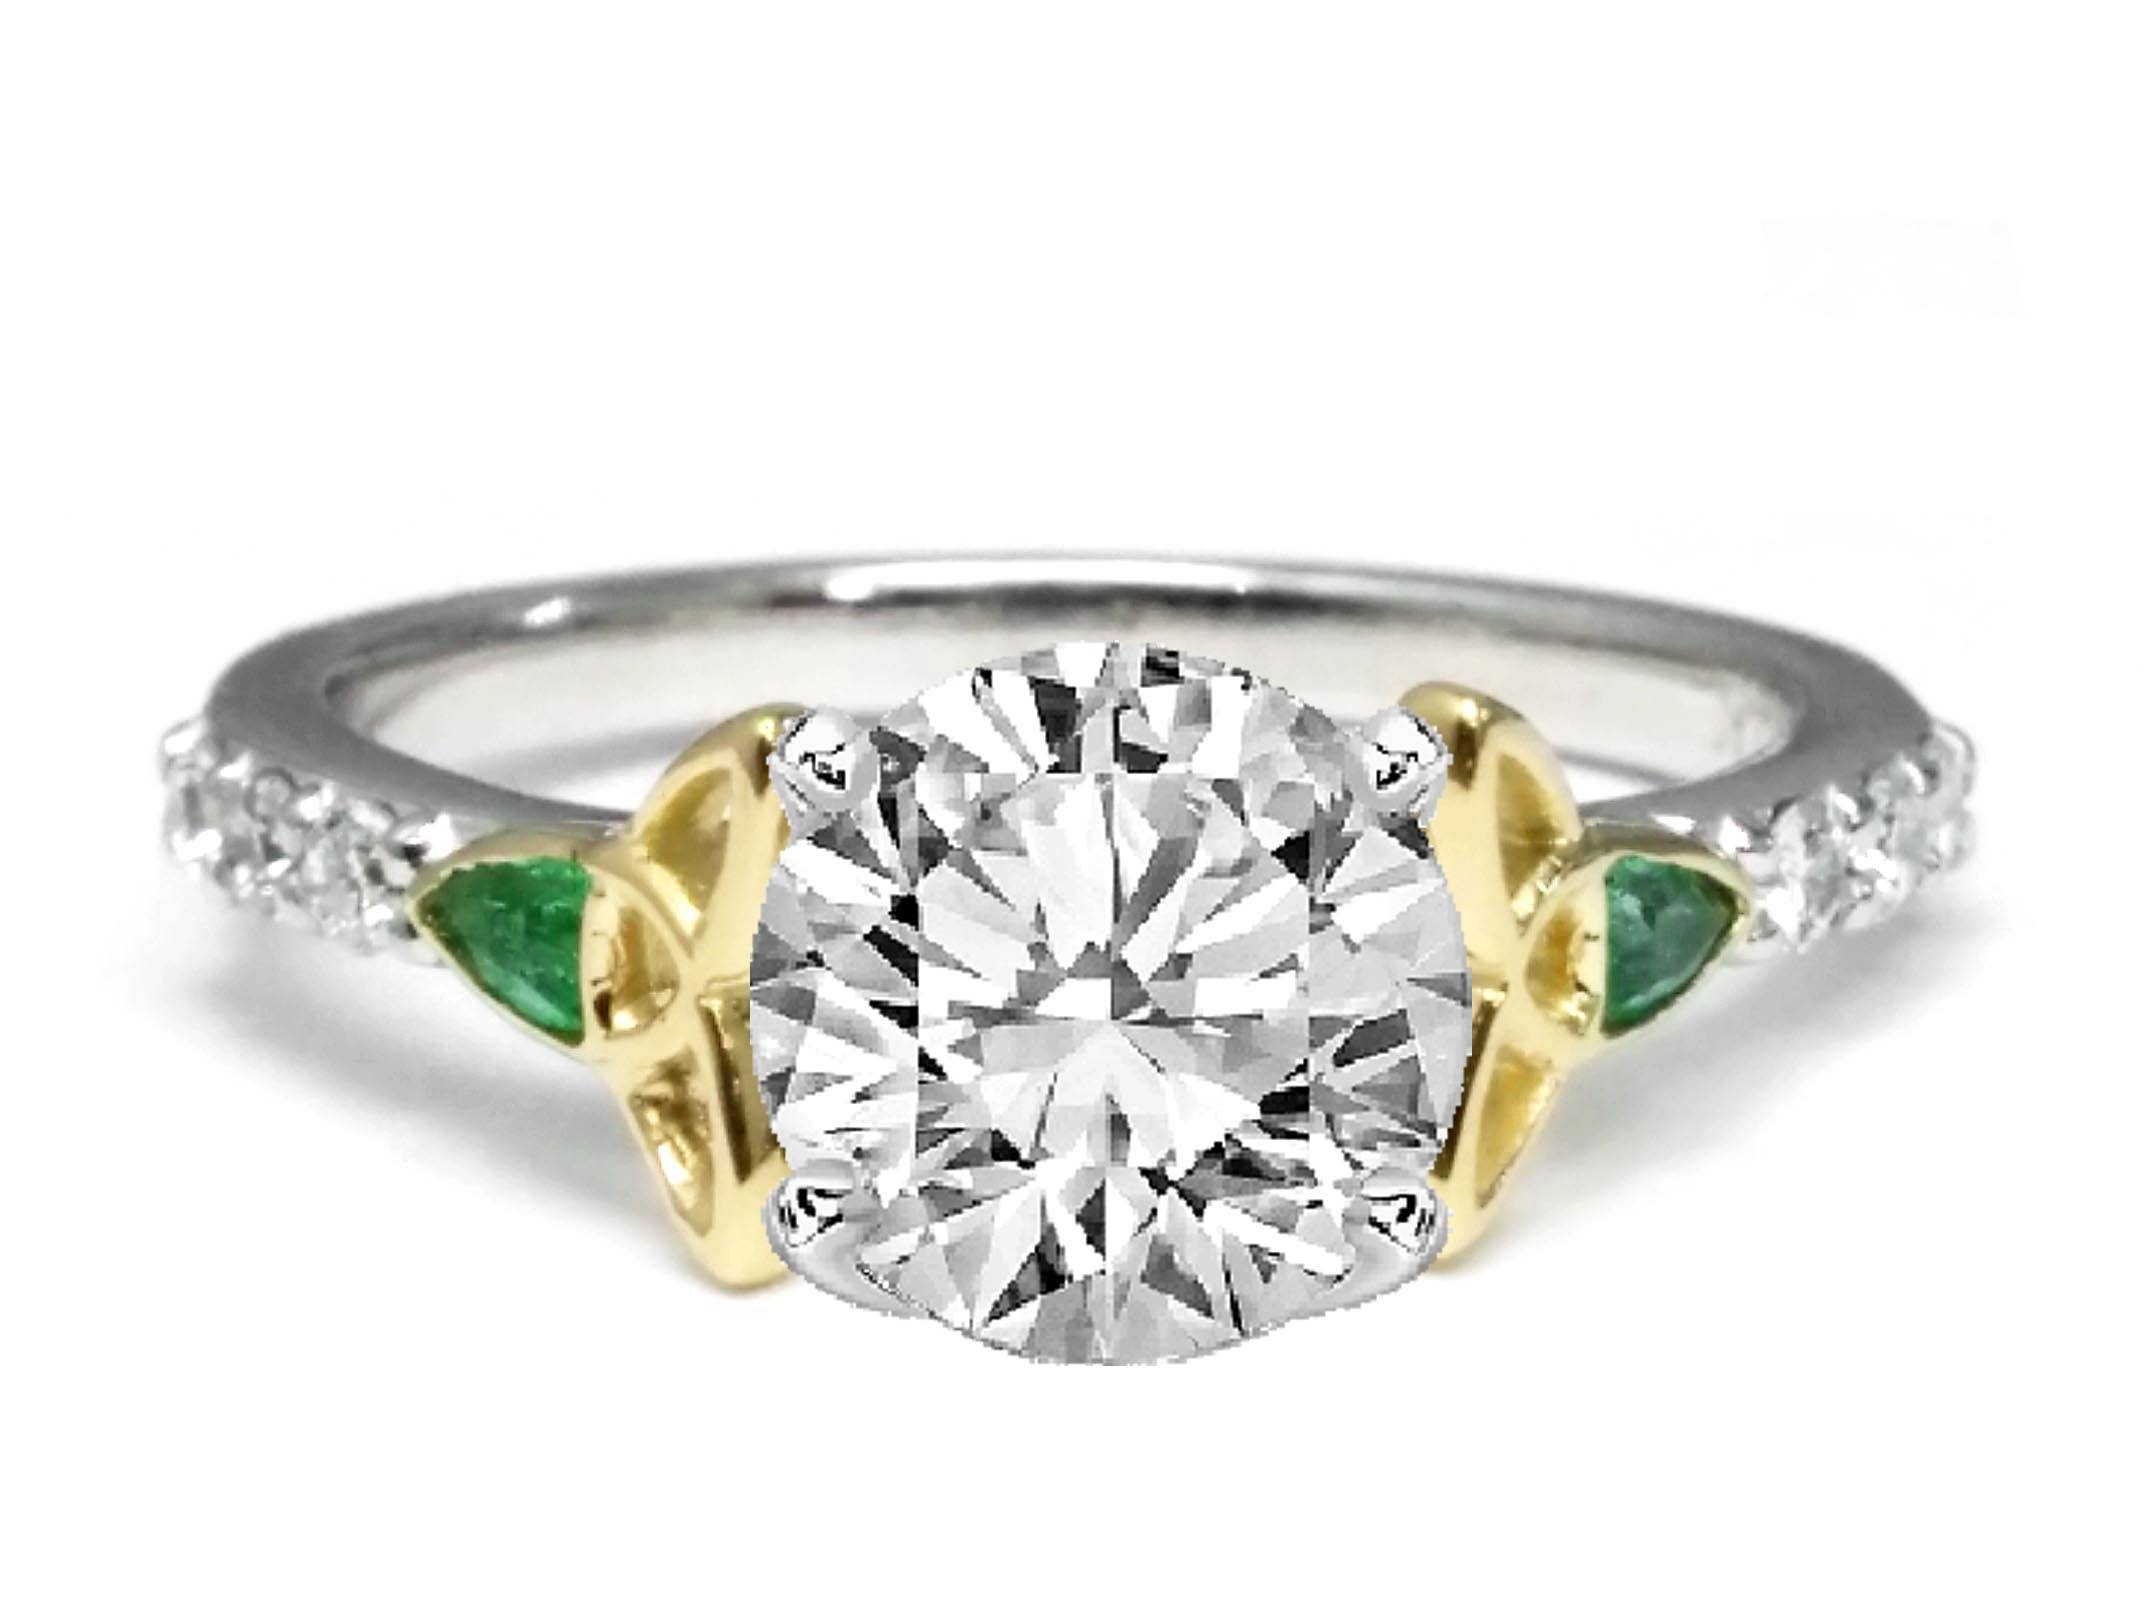 Celtic – Engagement Rings From Mdc Diamonds Nyc Within Celtic Engagement Ring Settings Only (View 4 of 15)